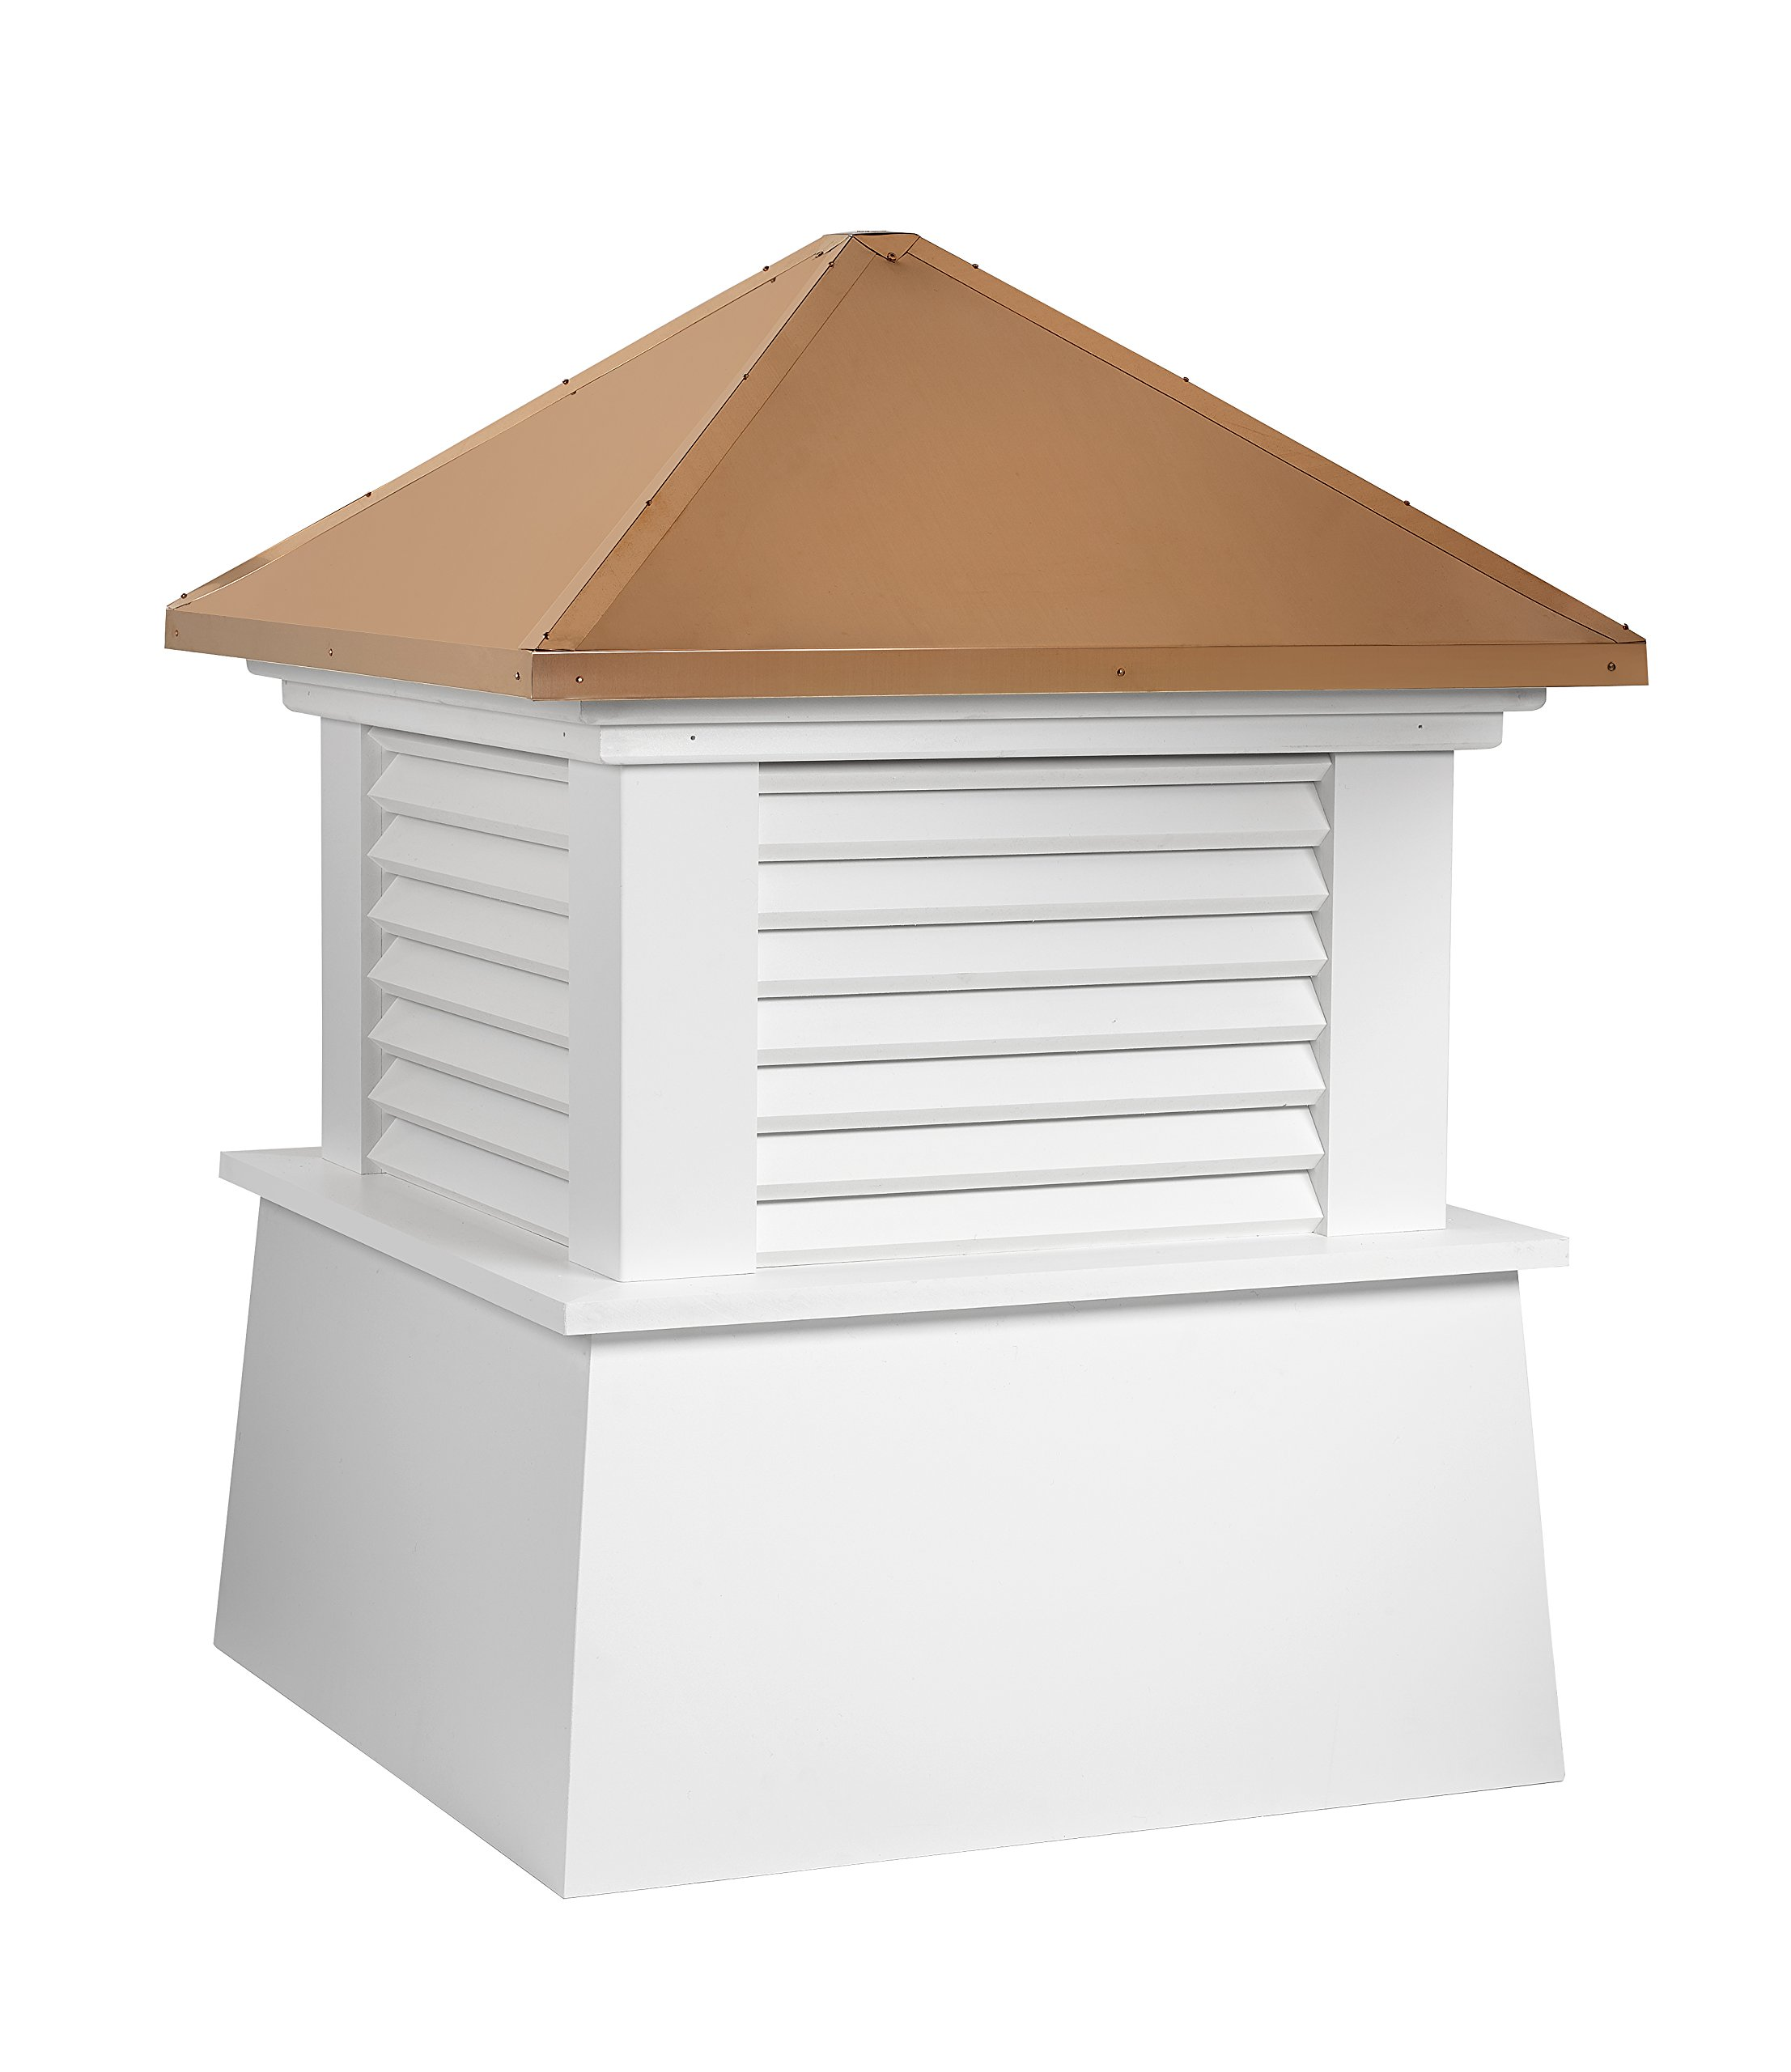 "Manchester Vinyl Cupola, Perfect size for a 2 Car Garage or Smaller House, 30"" square x 40"" high, Pure Copper Roof by Good Directions"